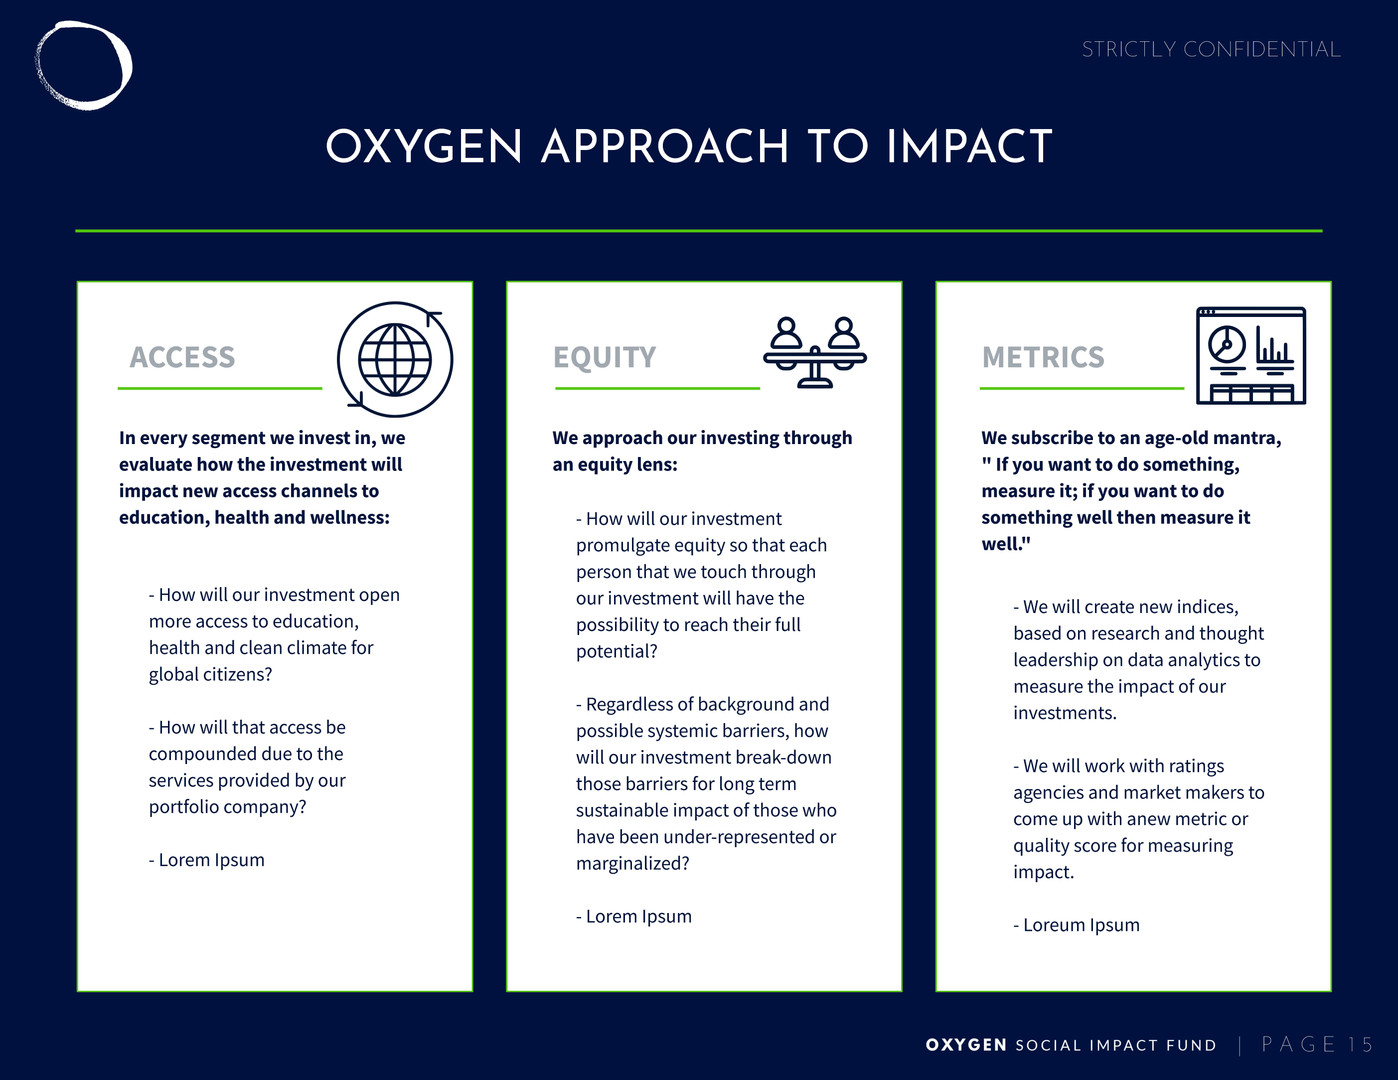 NEW_The Oxygen Fund2_Page_16.jpg